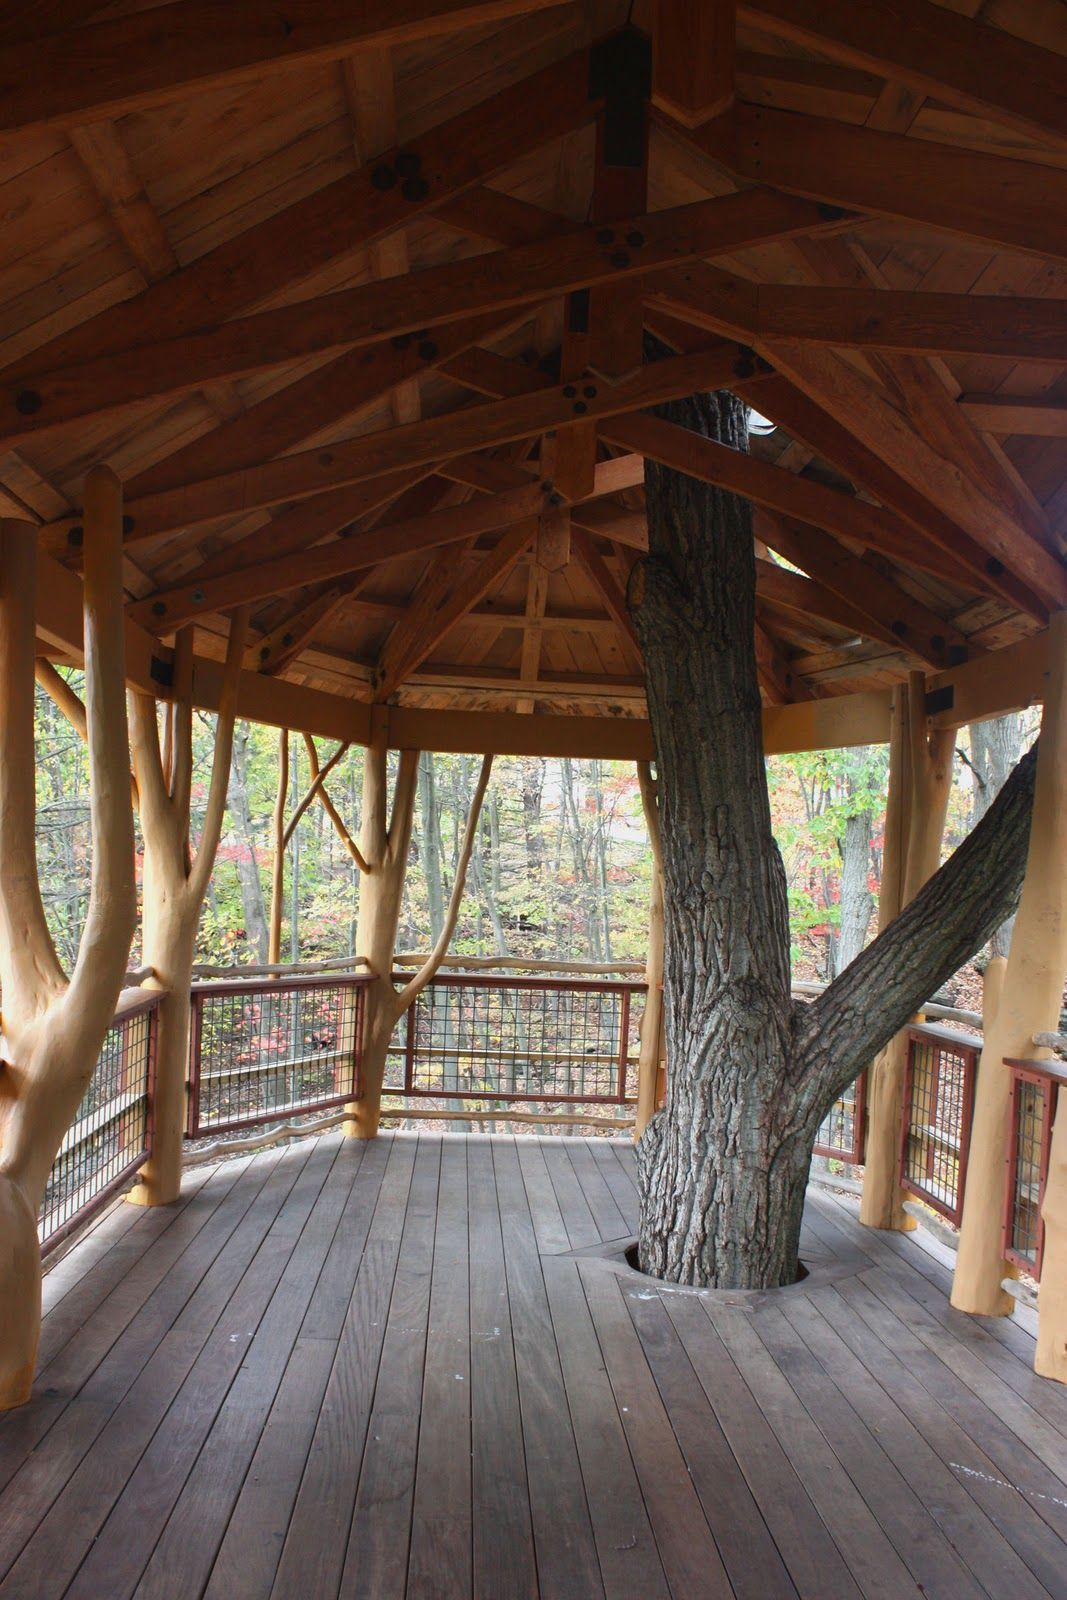 Gallery For Inside Of Simple Tree Houses Simple Tree House Tree House Plans Tree House